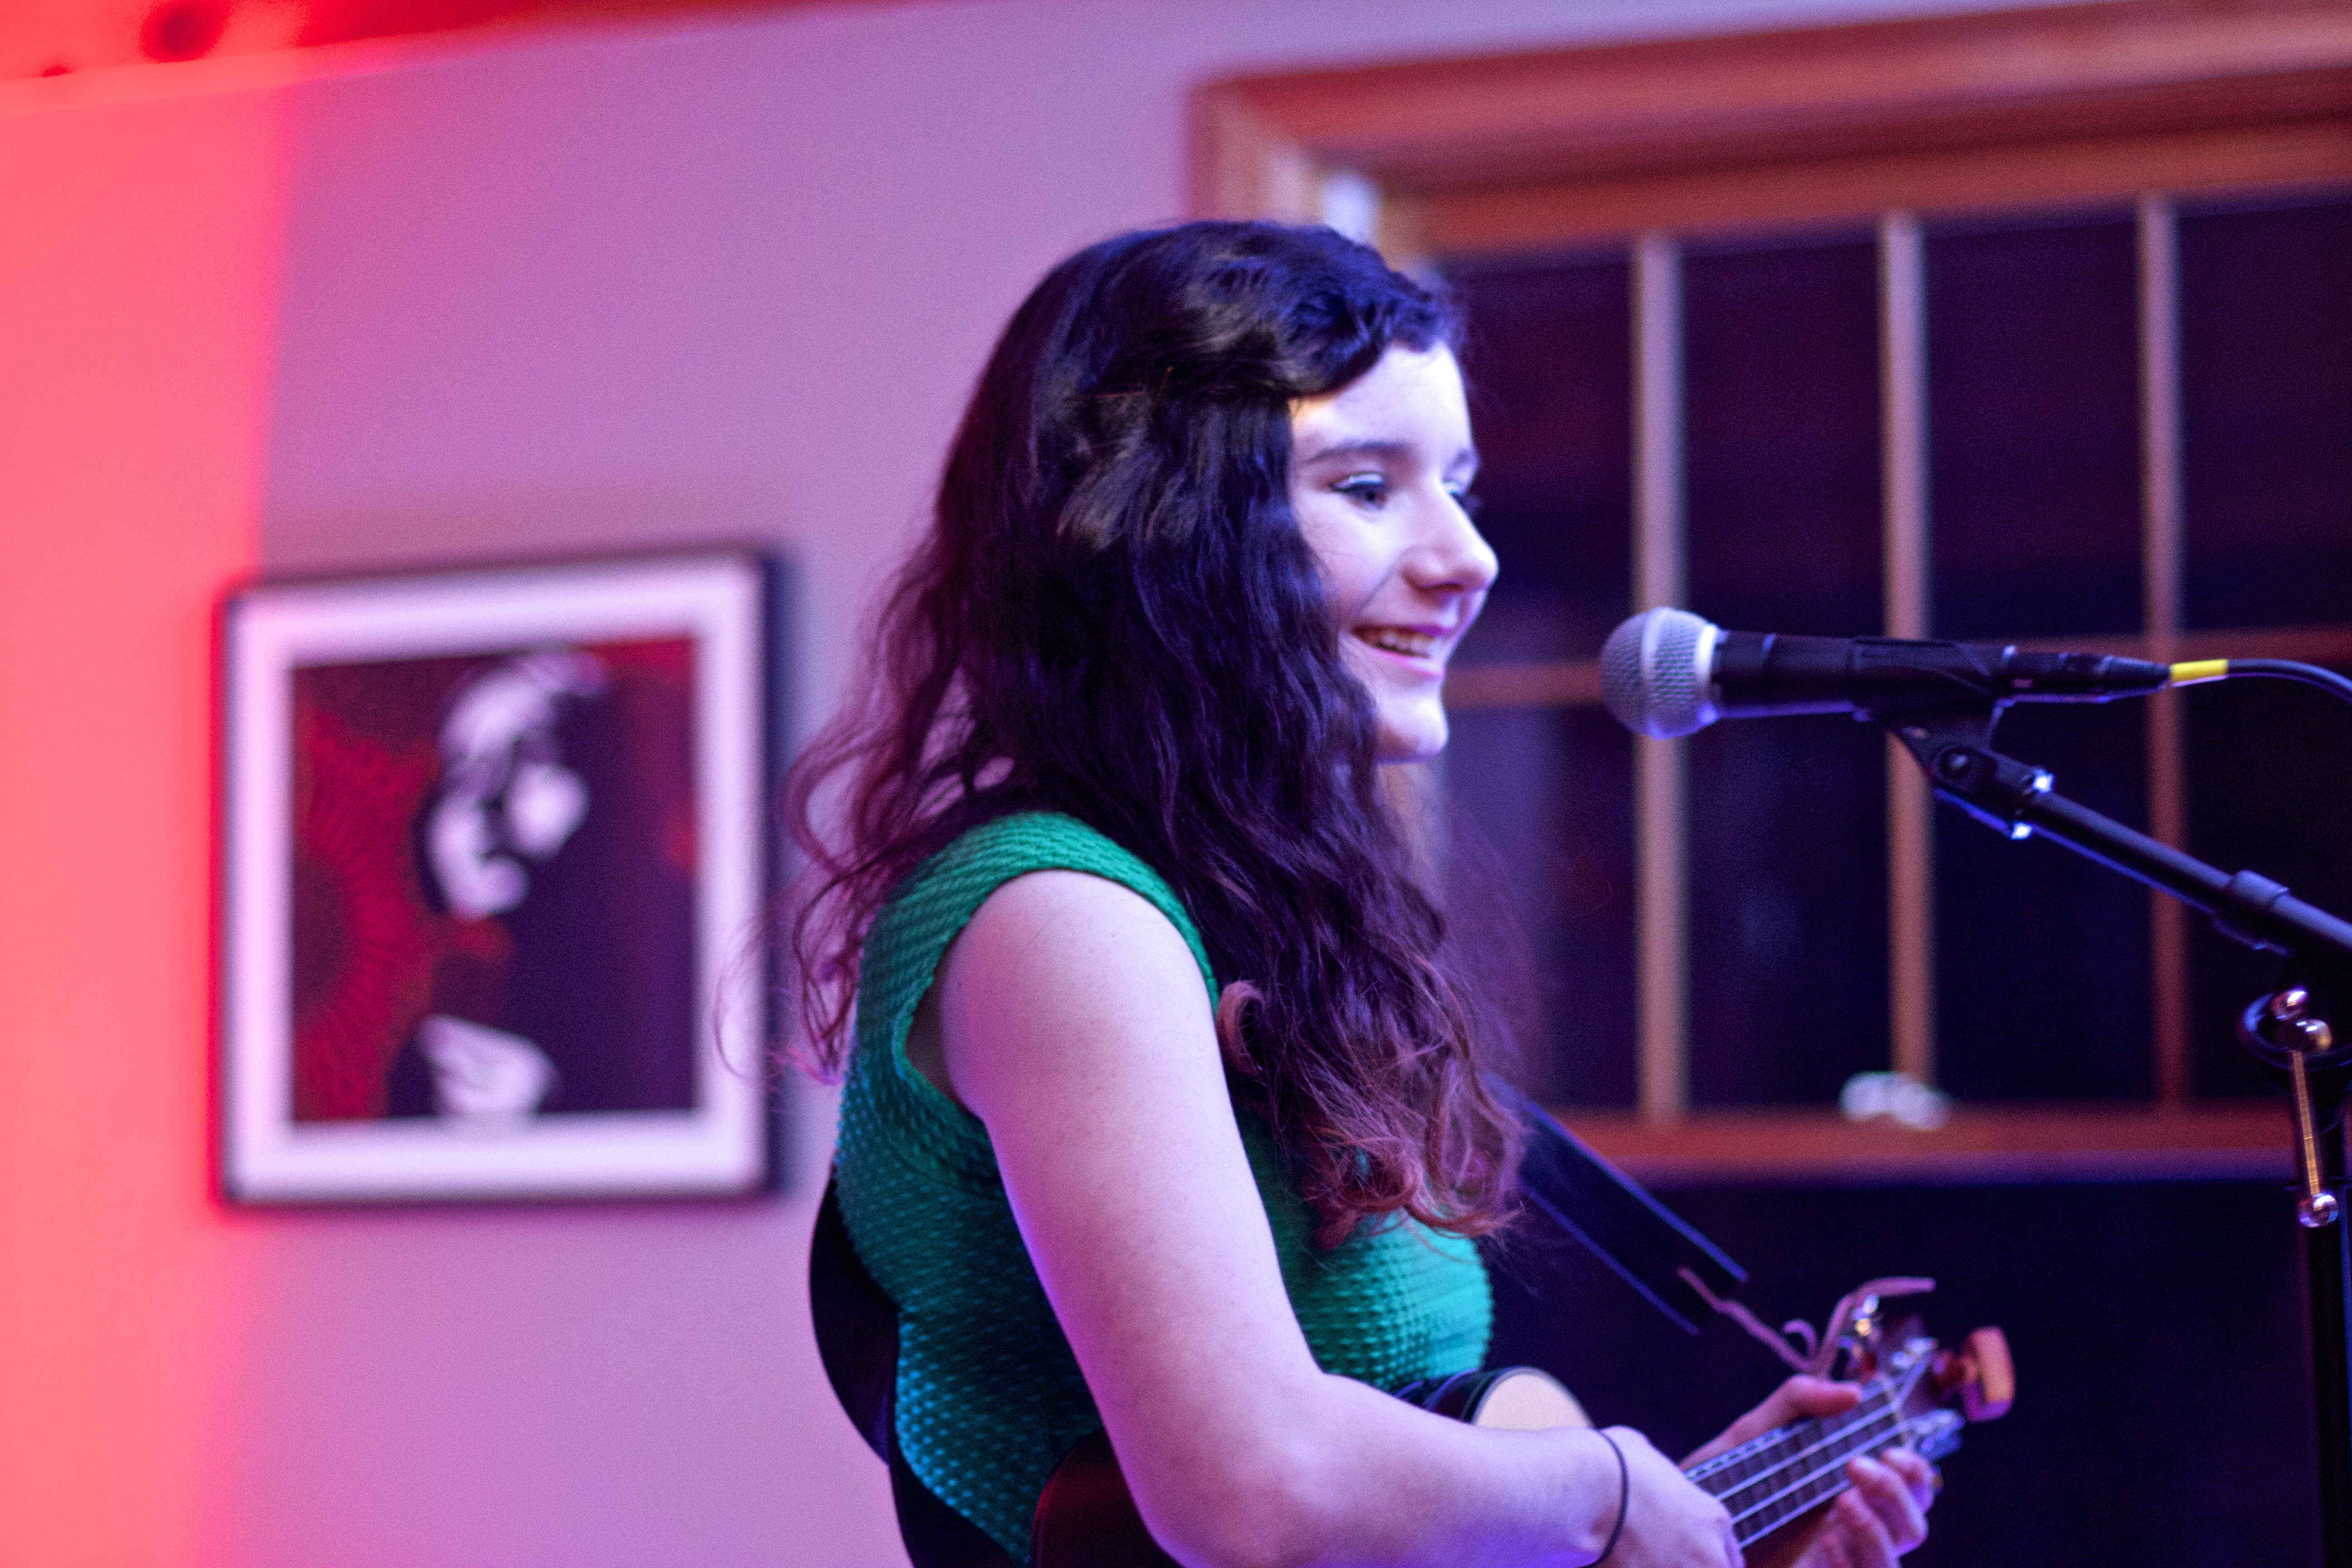 Sophie, Jen Mattern's daughter, performing a solo. | My Daughter Finds Her Voice